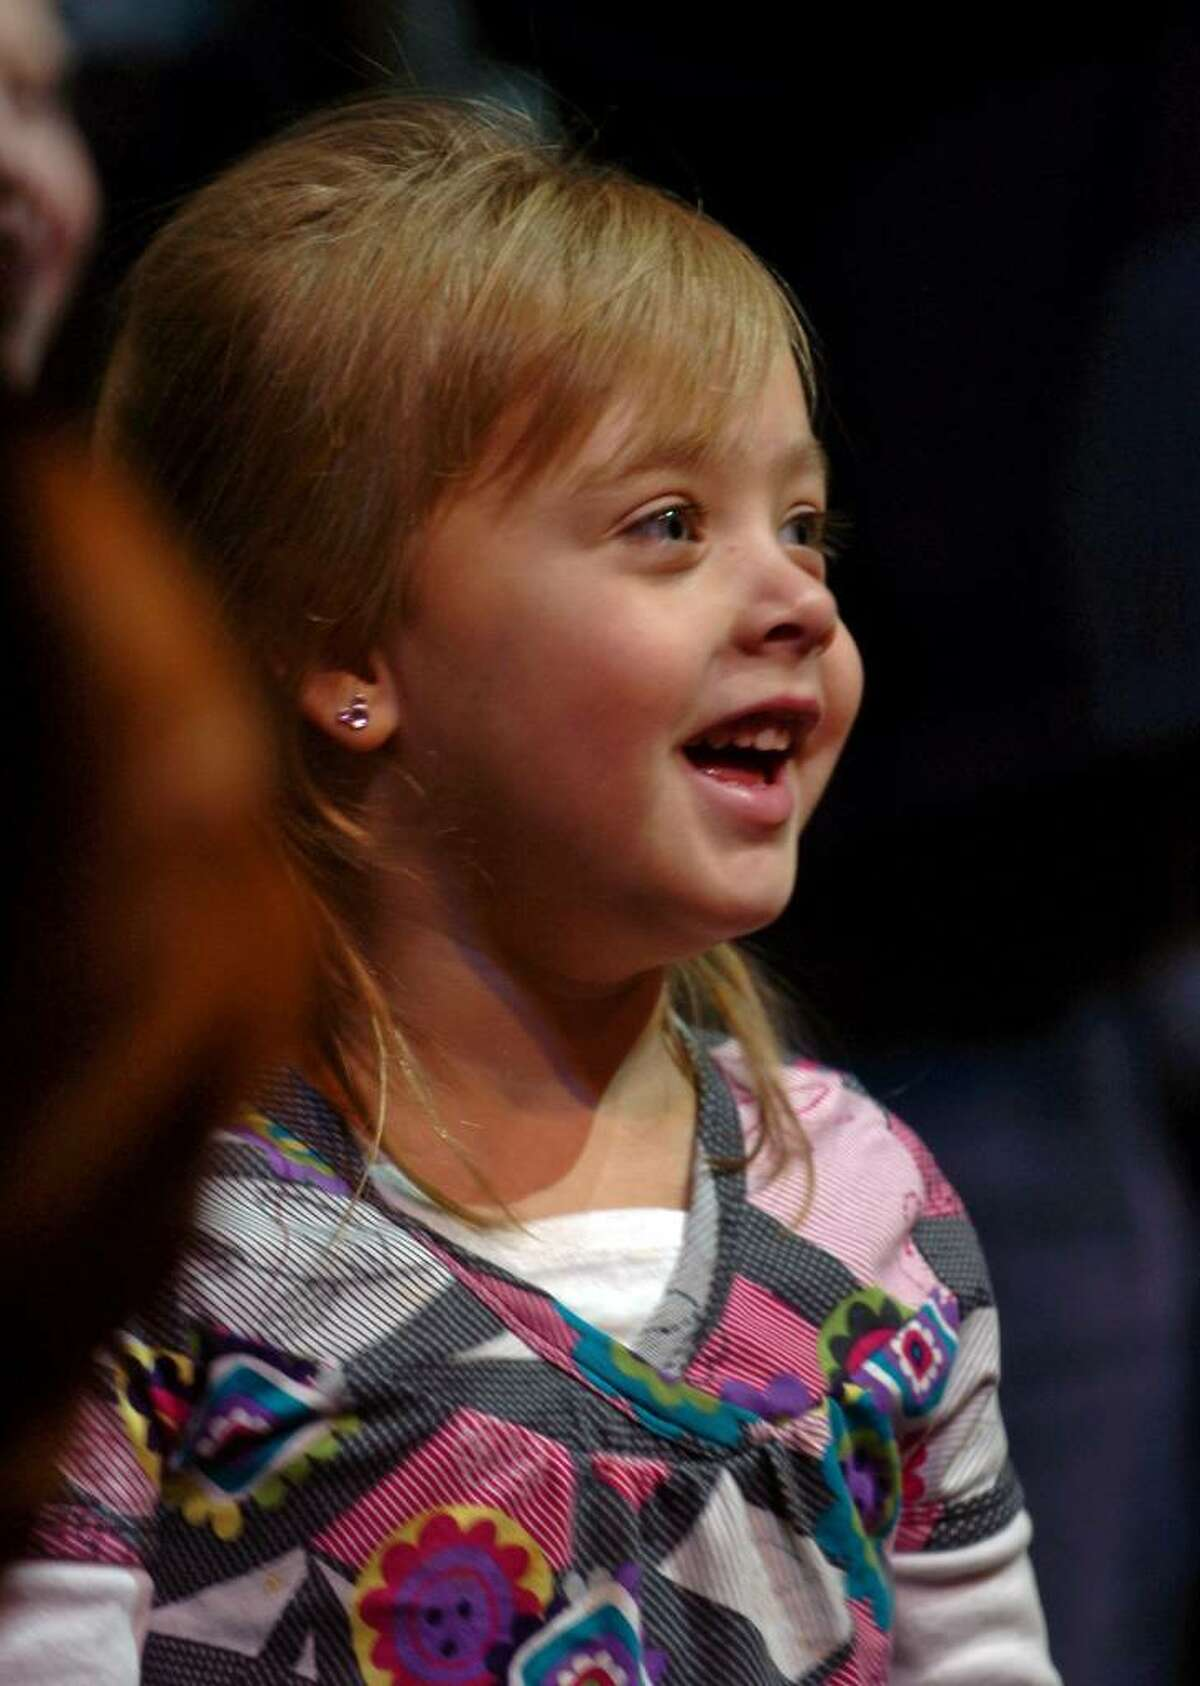 Kayleigh Householder, 4, of Ansonia, laughs as she watches the clowns perform at the Ringling Brothers Barnum and Bailey All Access Pre-Show event at the Arena at Harbor Yard in Bridgeport, Conn. on Thursday Oct. 29, 2009.